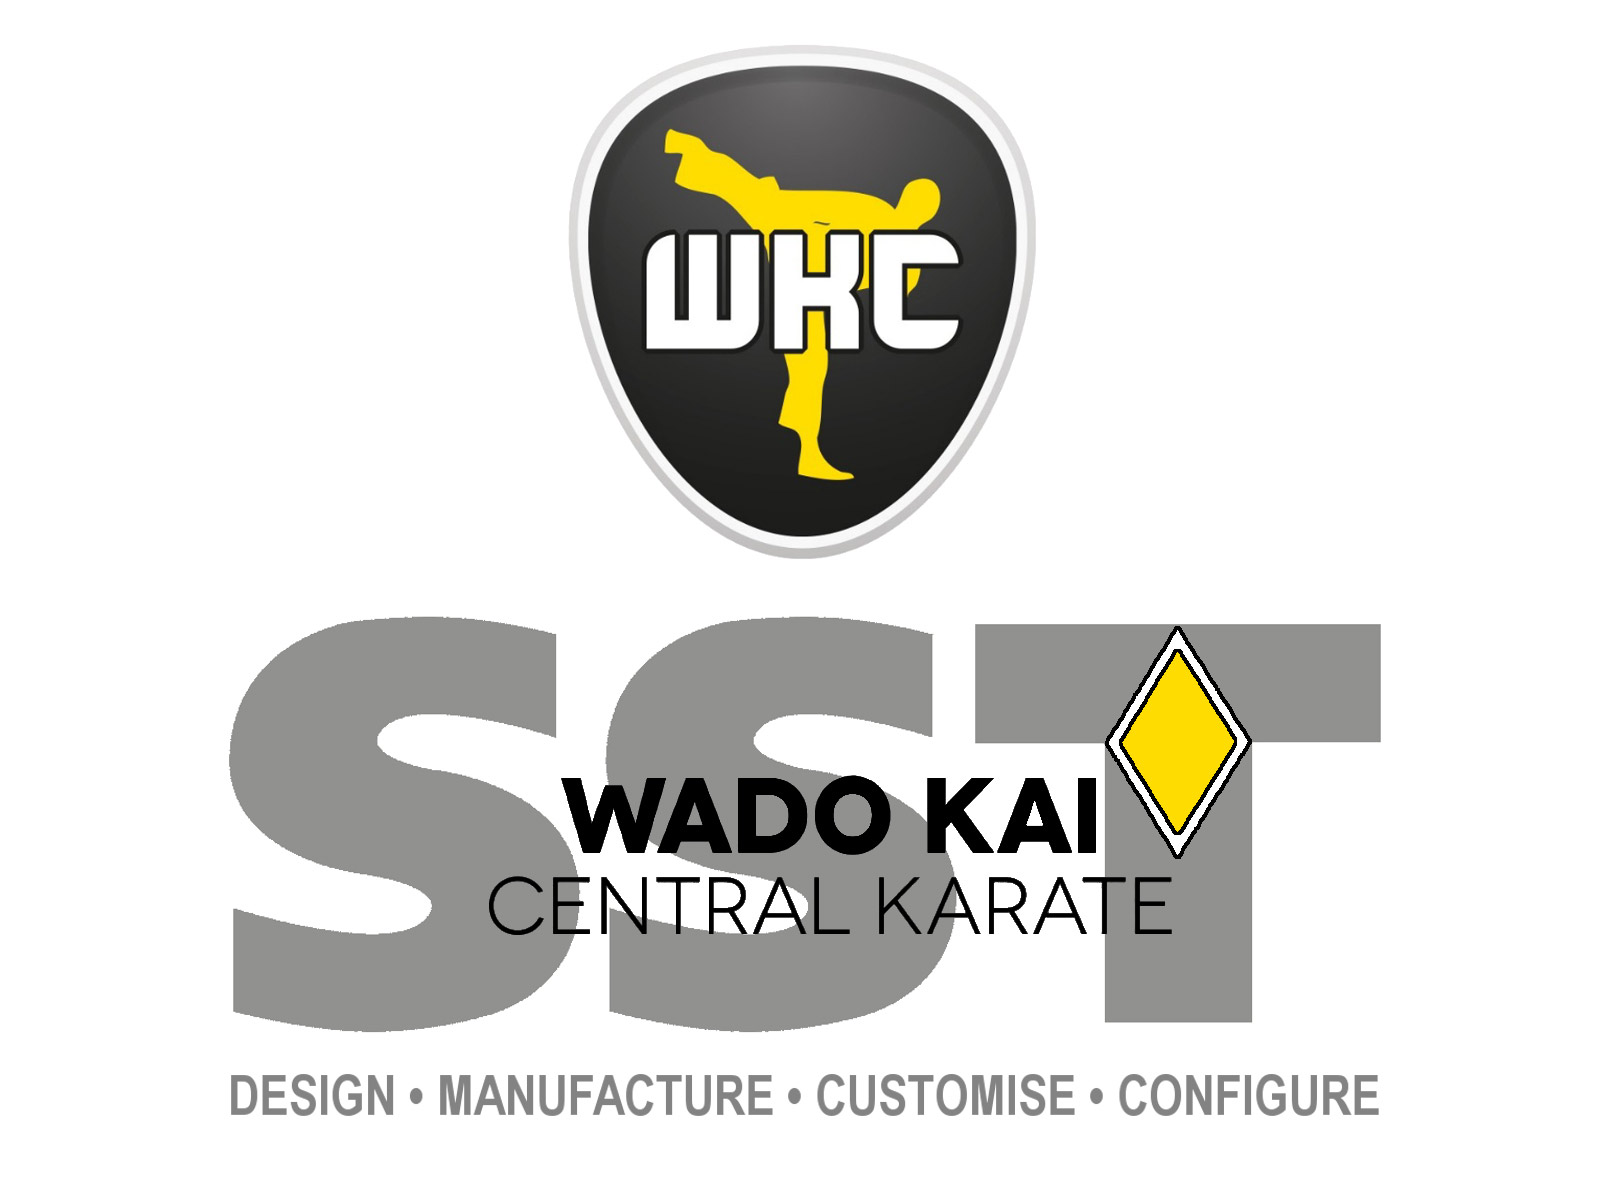 Update on Wado Kai Central Karate